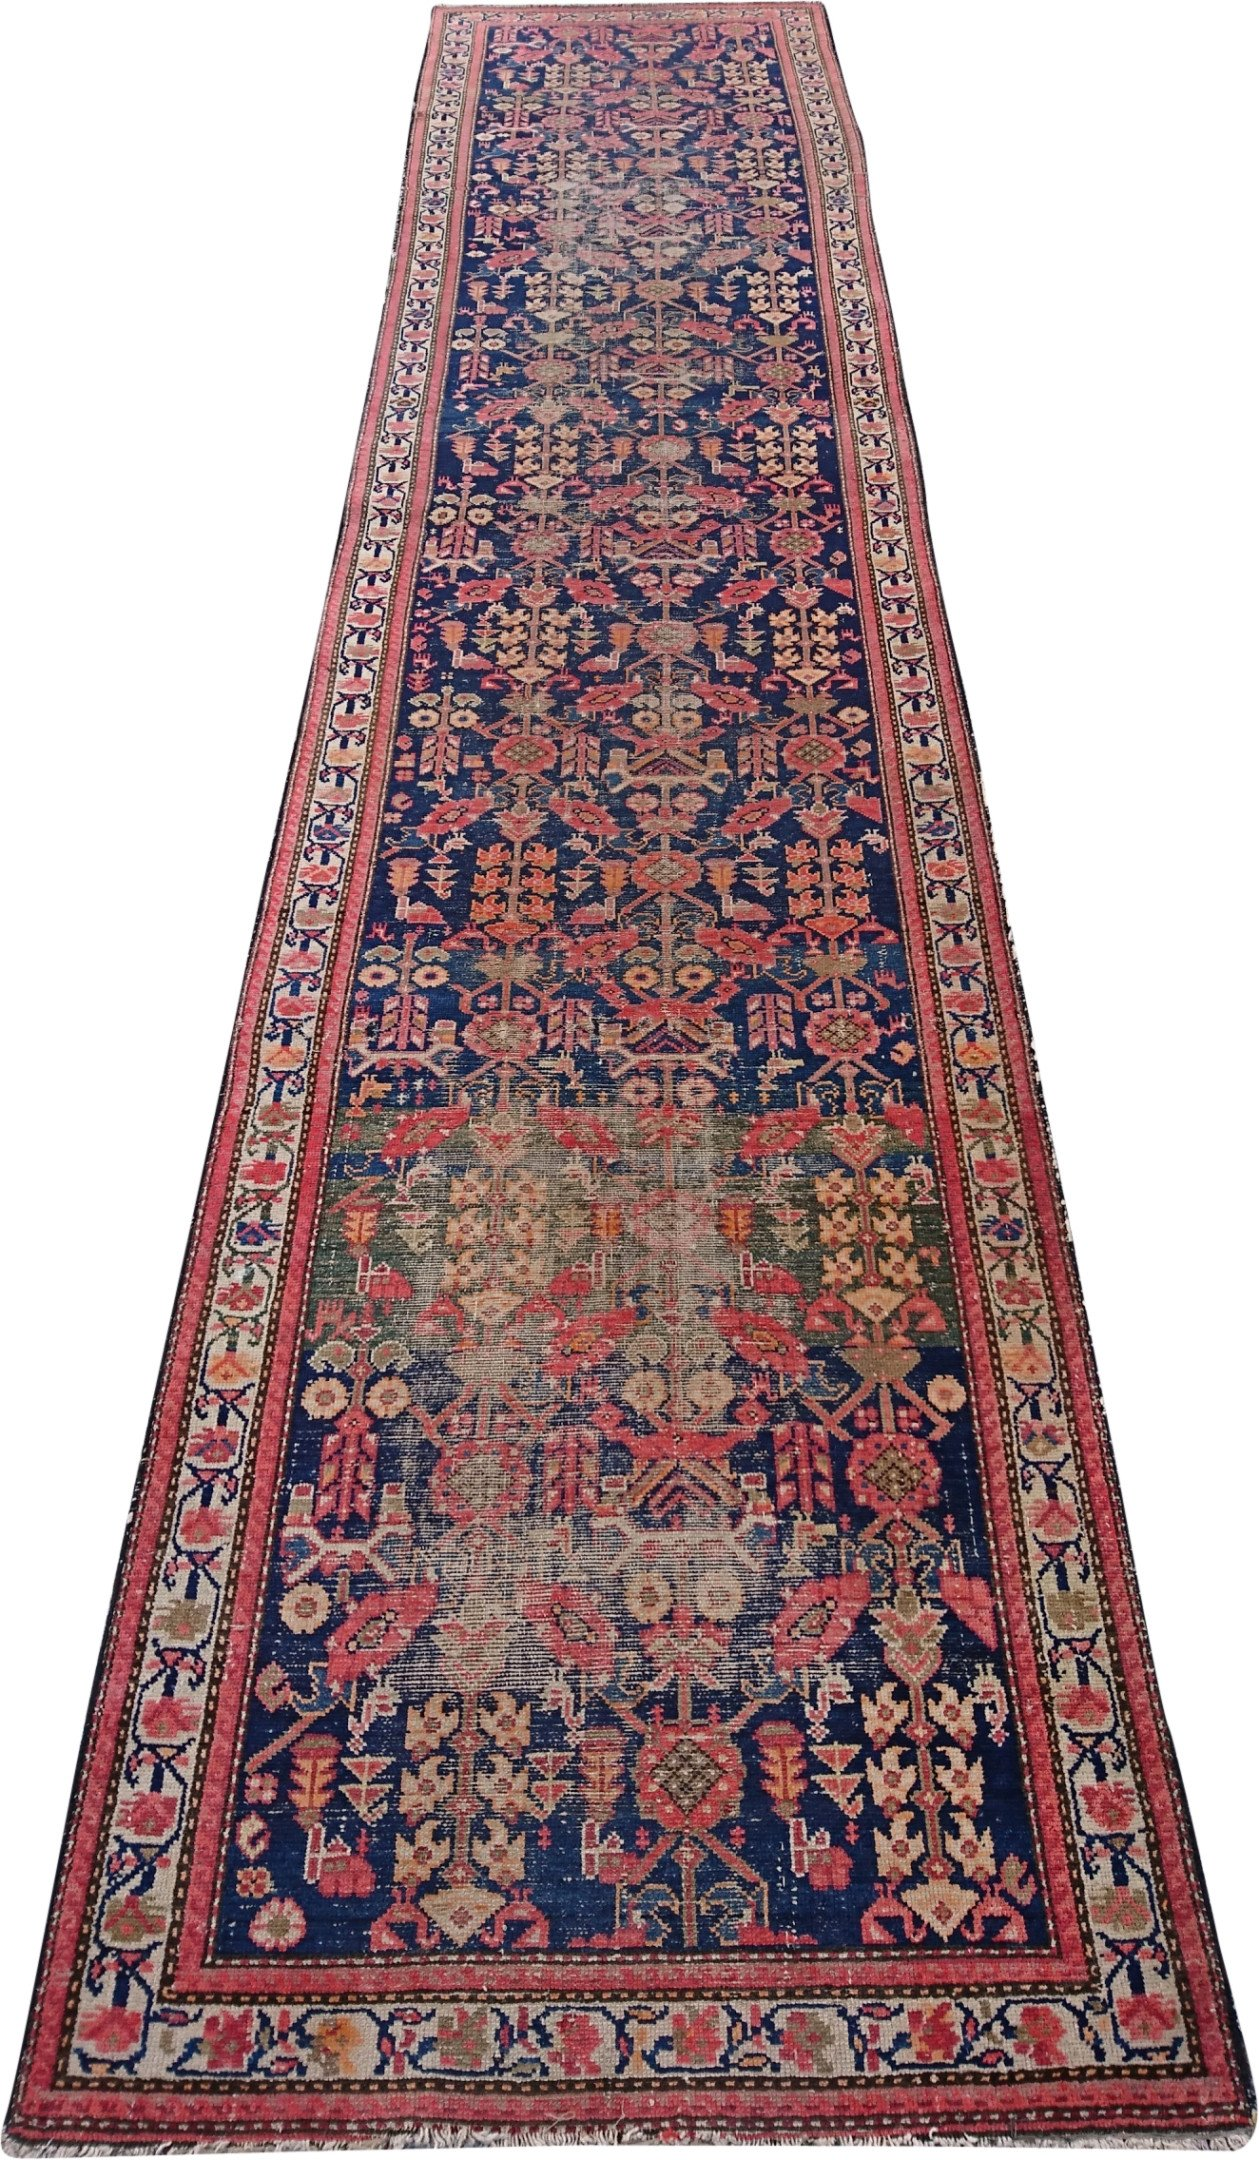 Persian Farahan Carpet, Iran, early 19th c.